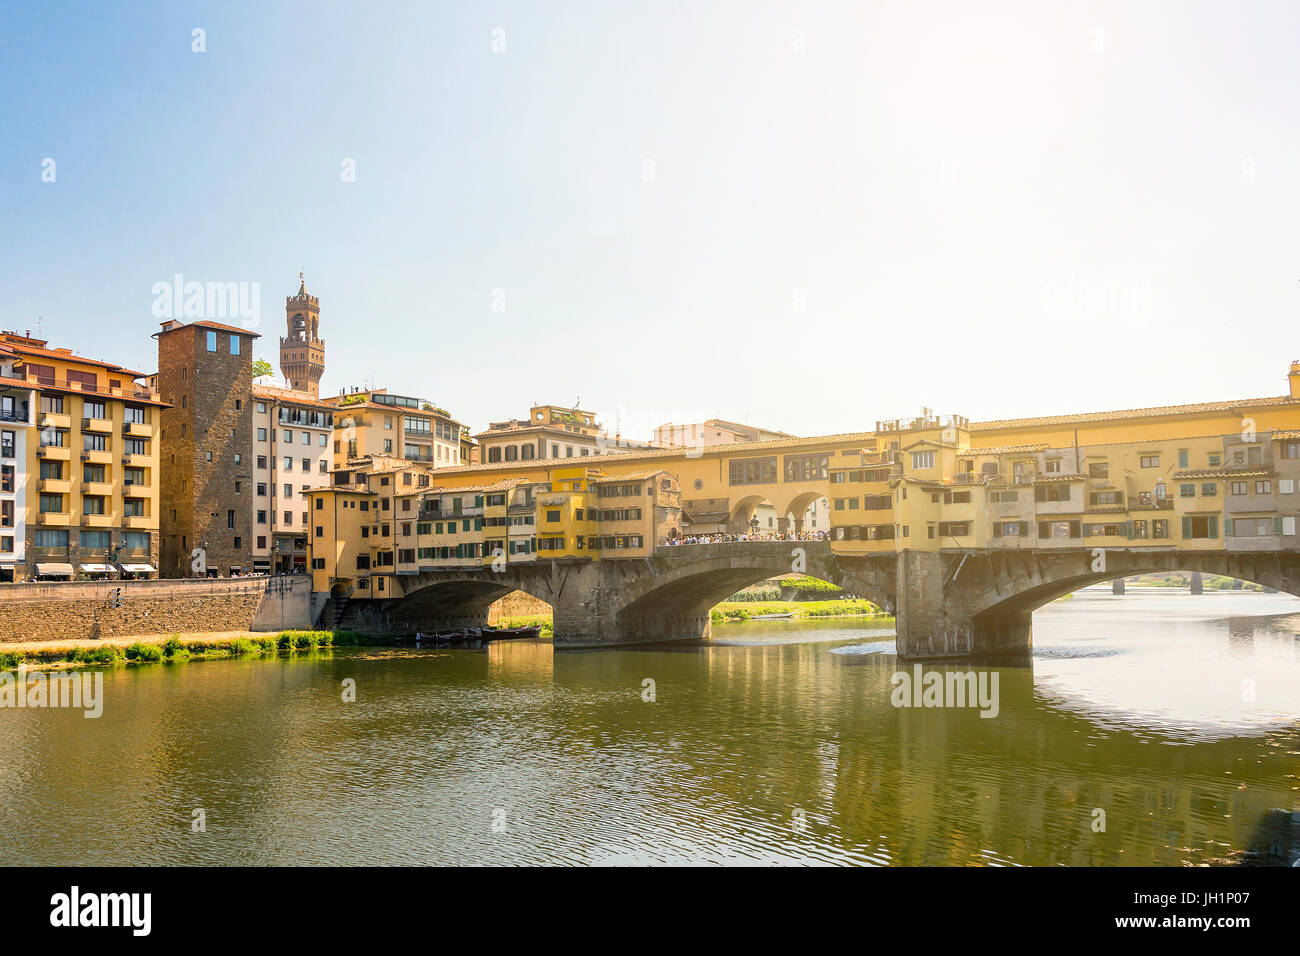 Medieval stone bridge Ponte Vecchio over the Arno River in Florence, Tuscany, Italy. Florence is a popular tourist - Stock Image